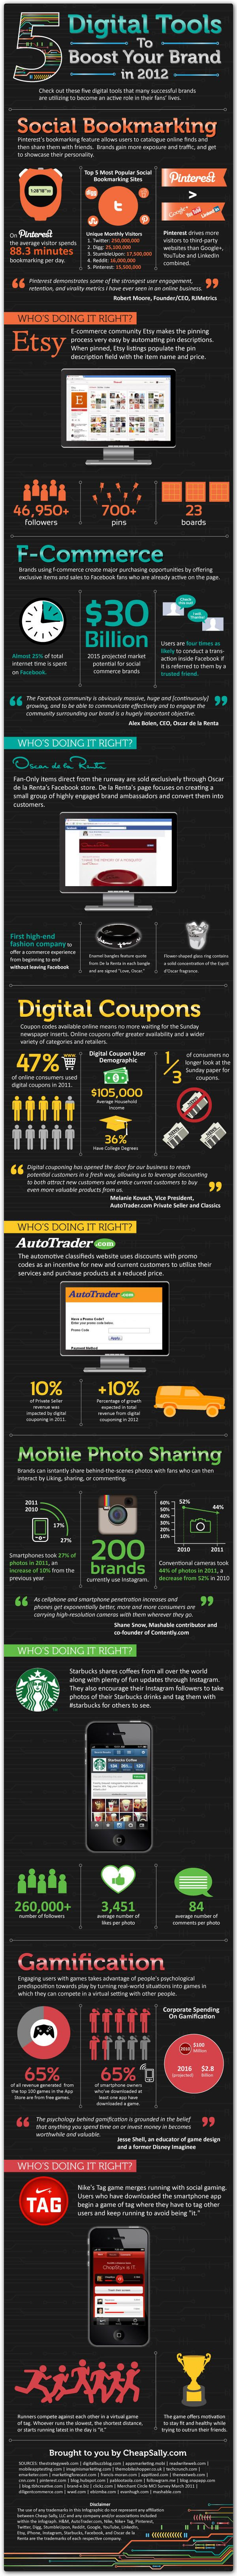 Infographic: 5 digital tools to boost your brand in 2012